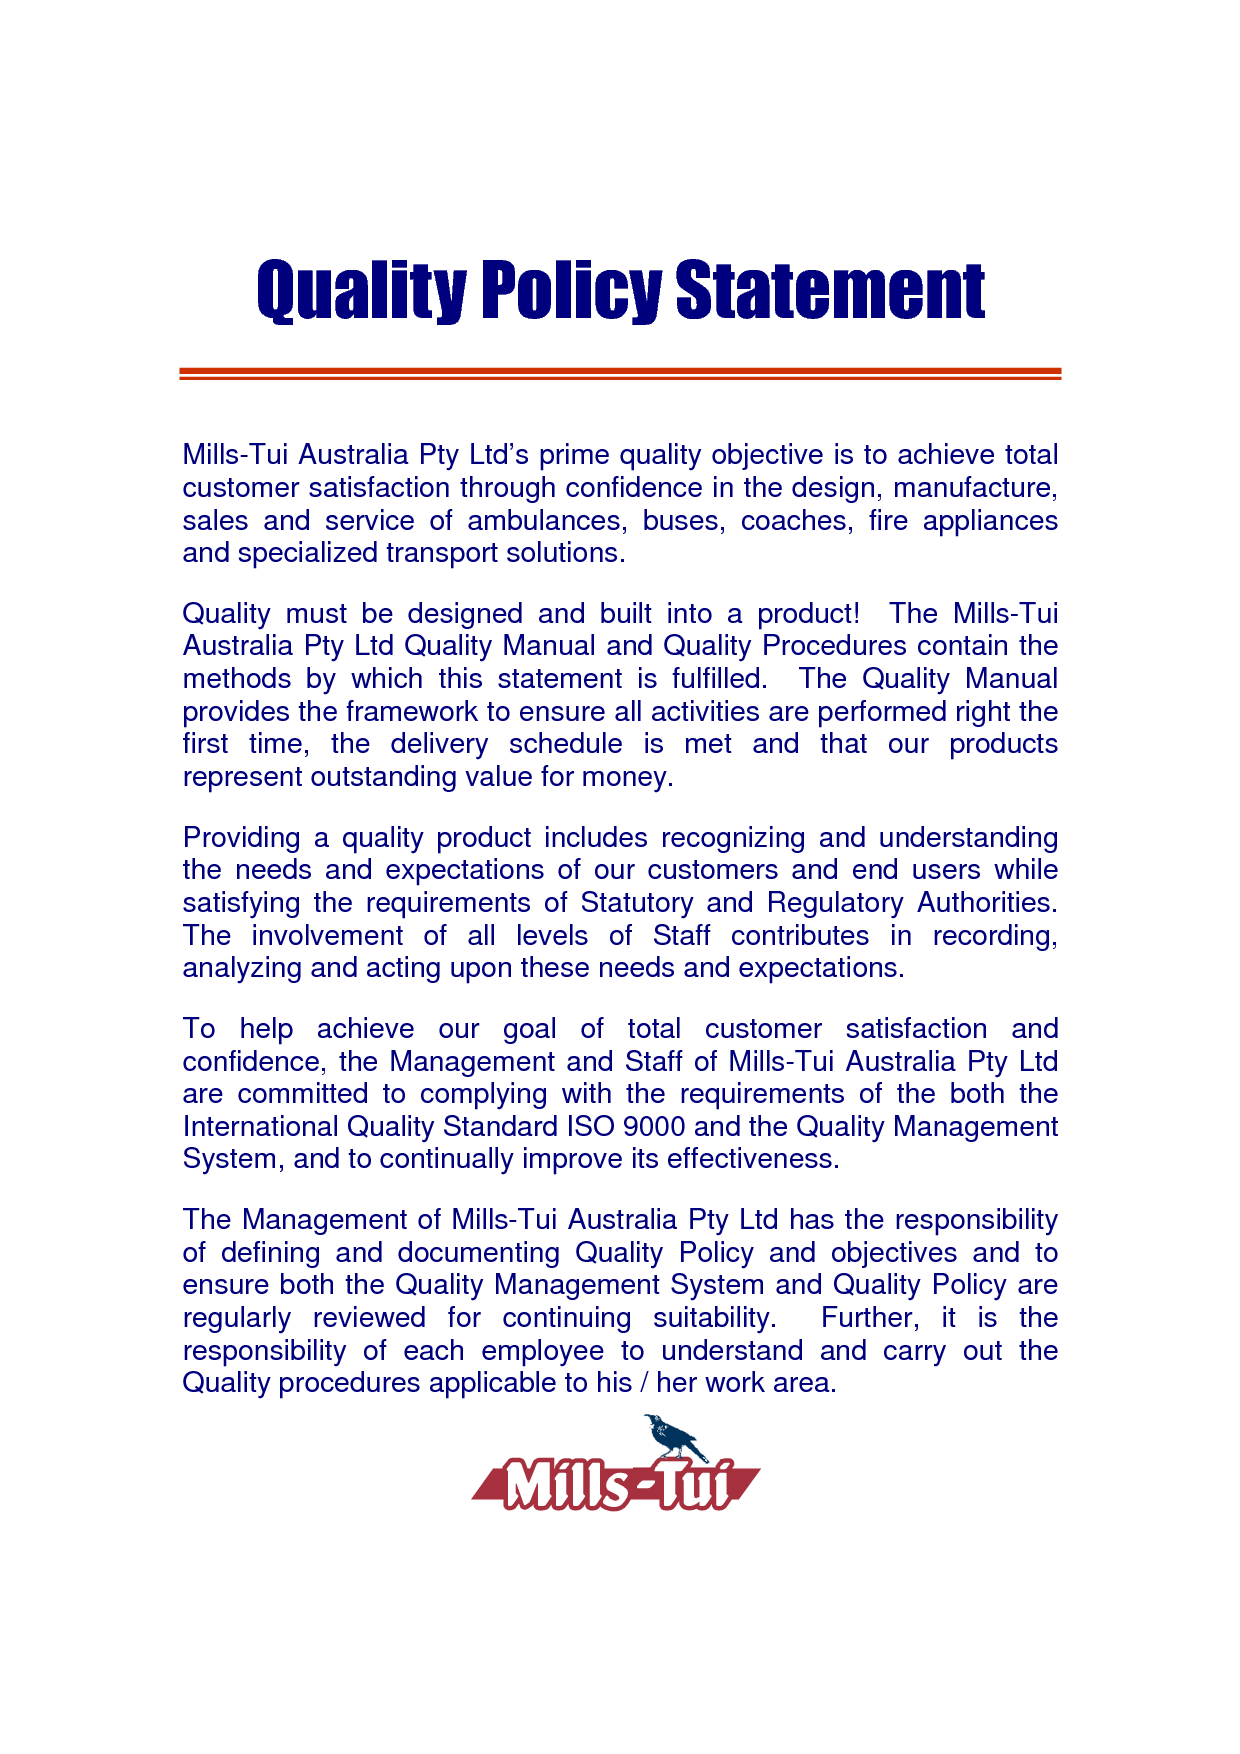 Quality Policy Template. quality procedure template excel download ...